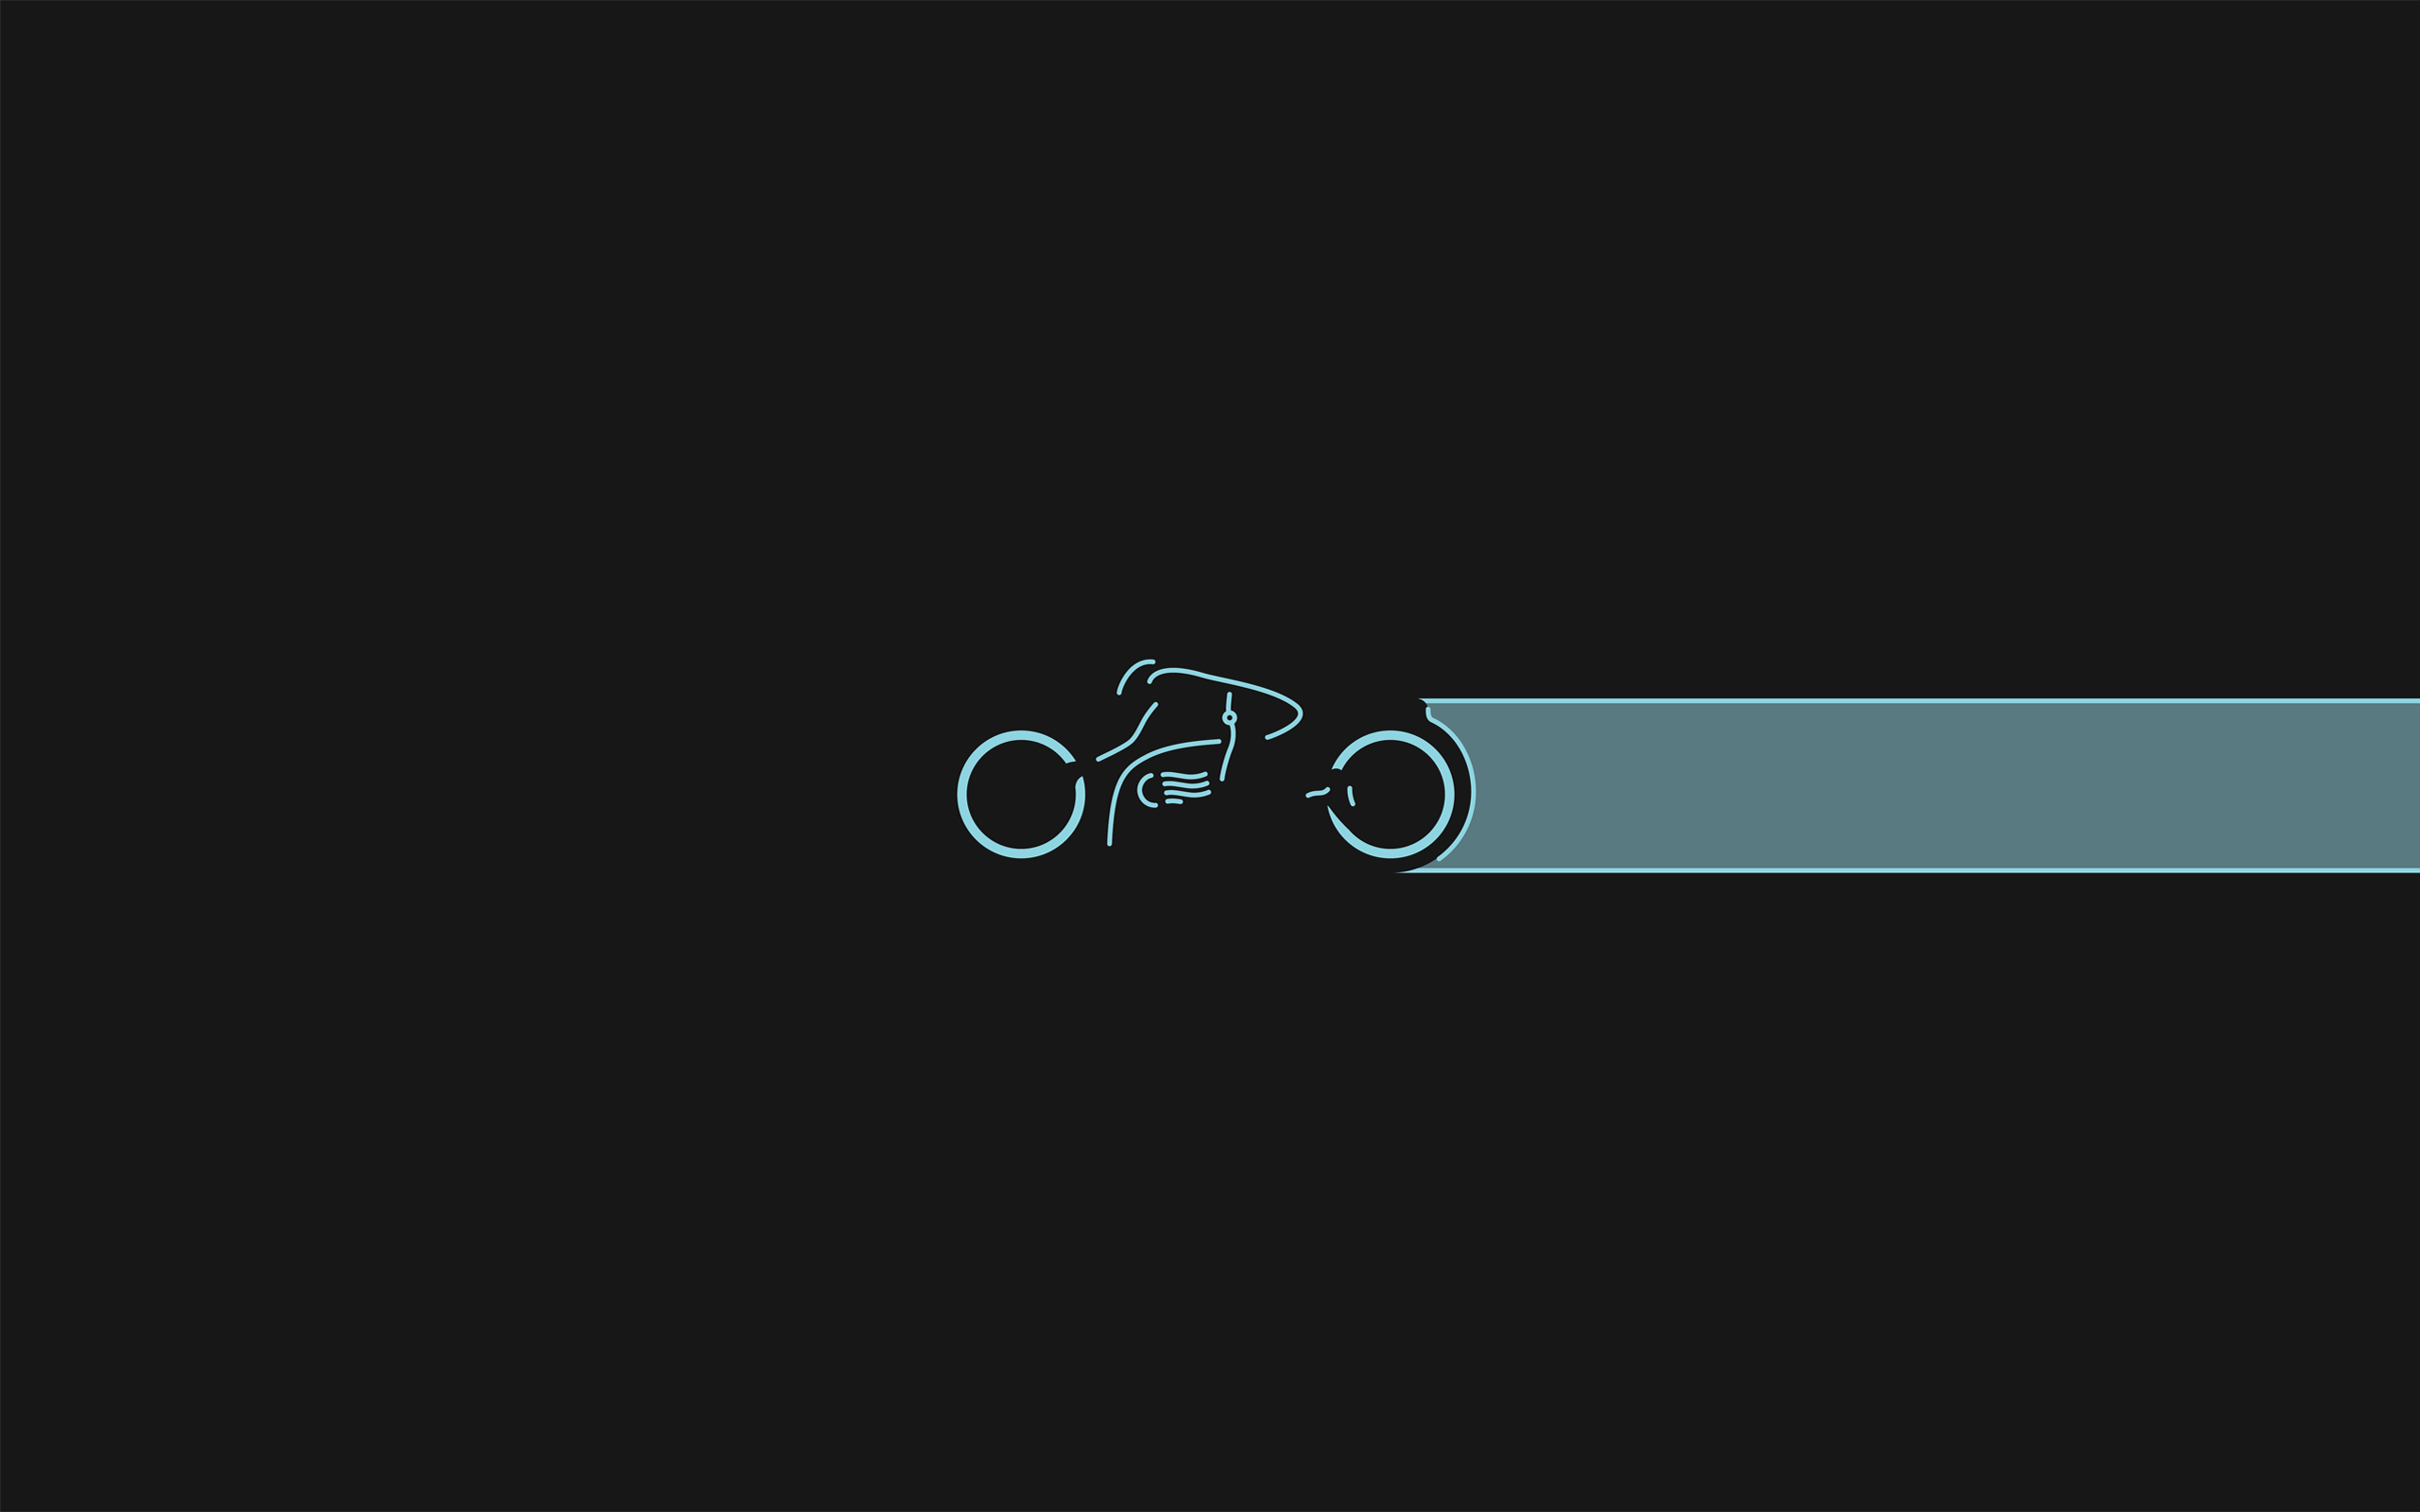 55+ Brilliant Minimal Desktop Wallpapers